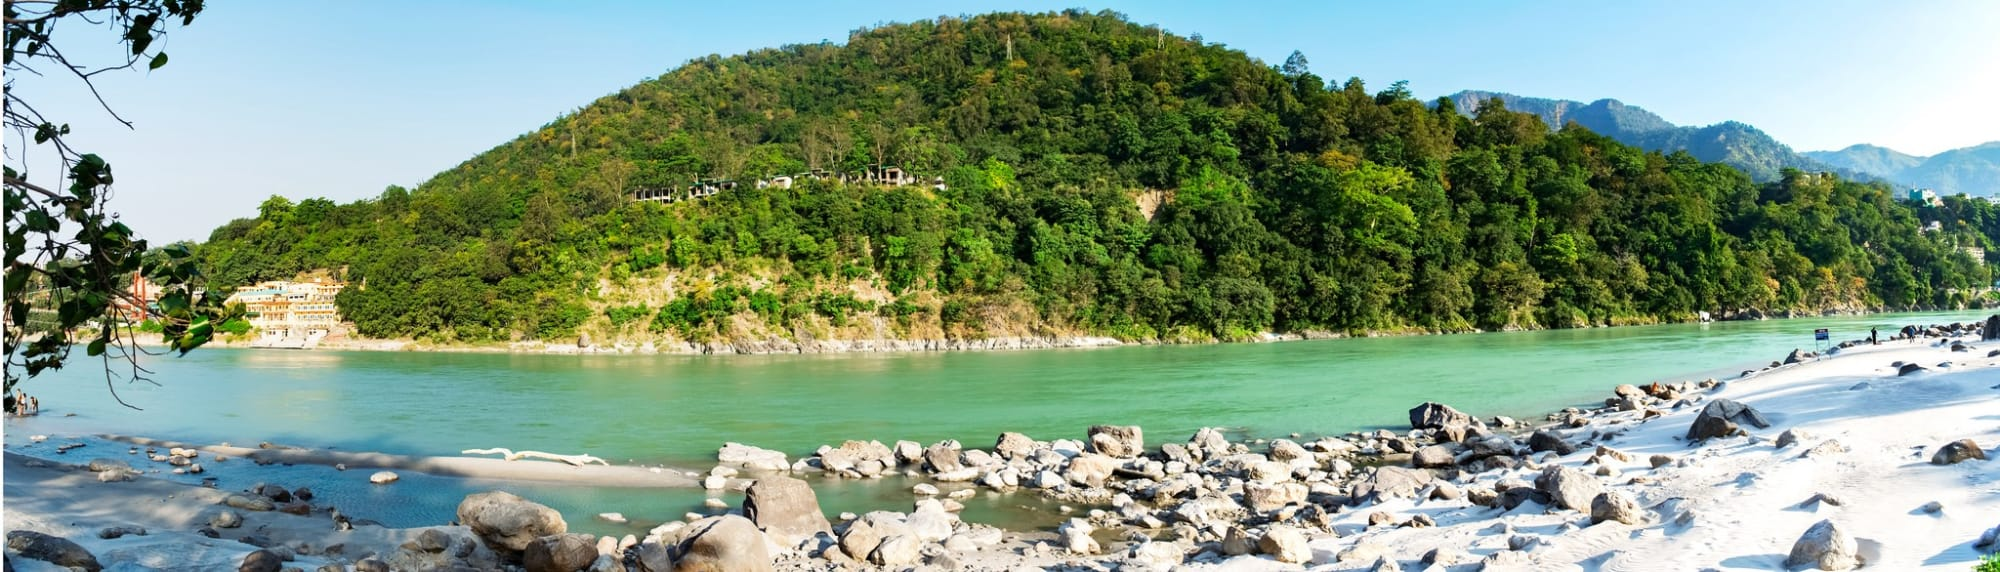 The ghat of Ganga where we enjoyed the breathtaking view of the sun coming up, spending over 3 hours at leisure